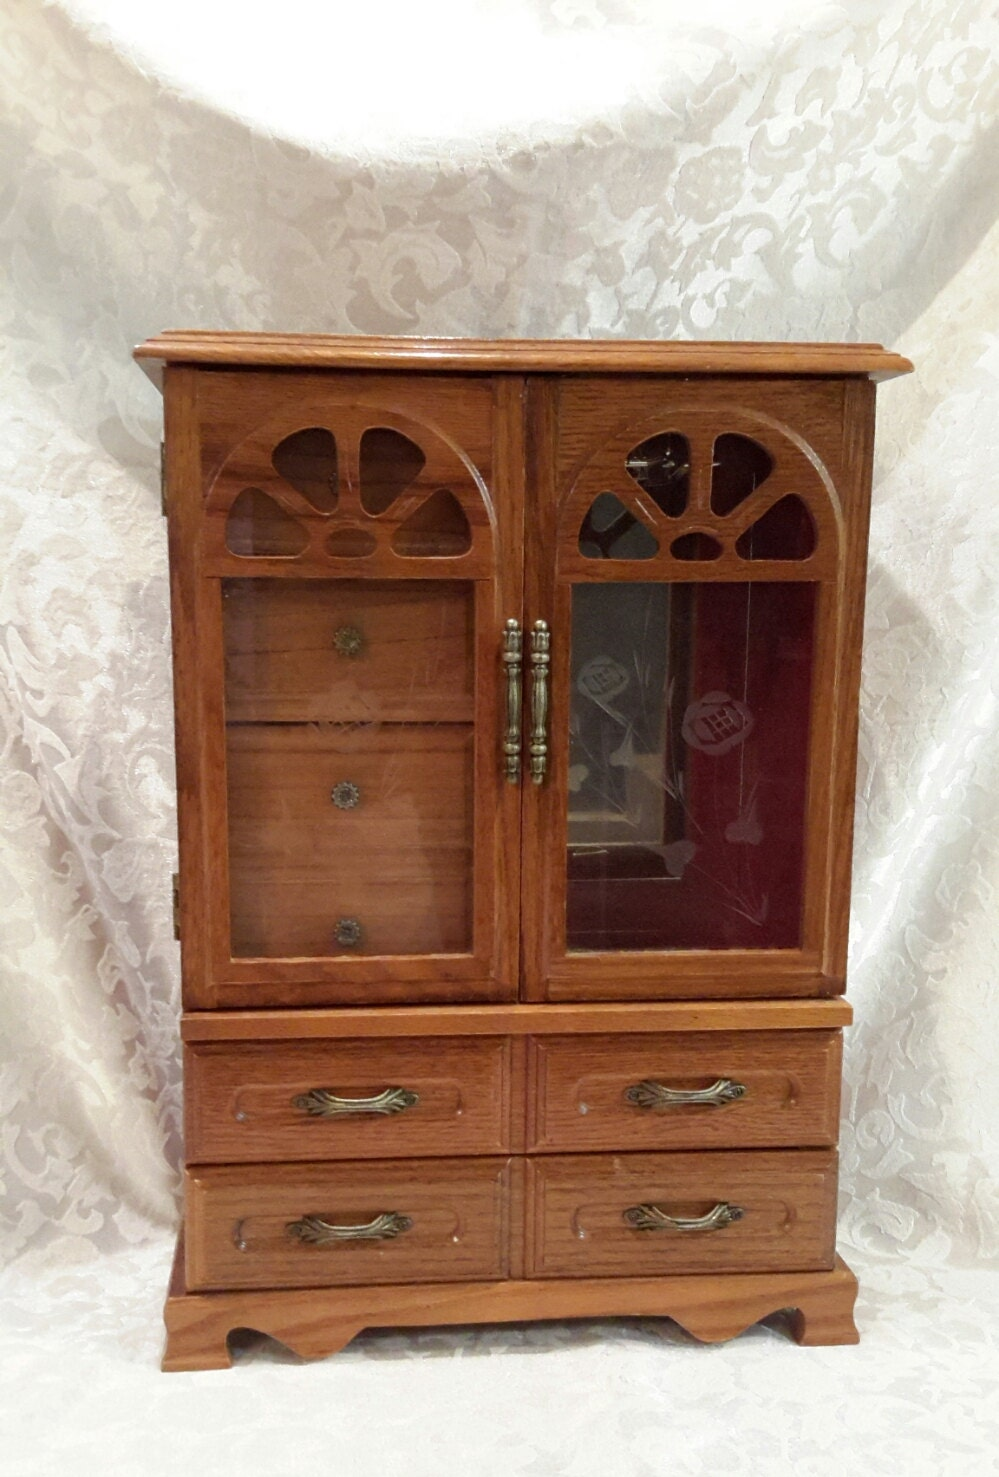 wooden jewelry box large jewelry armoire jewelry box. Black Bedroom Furniture Sets. Home Design Ideas